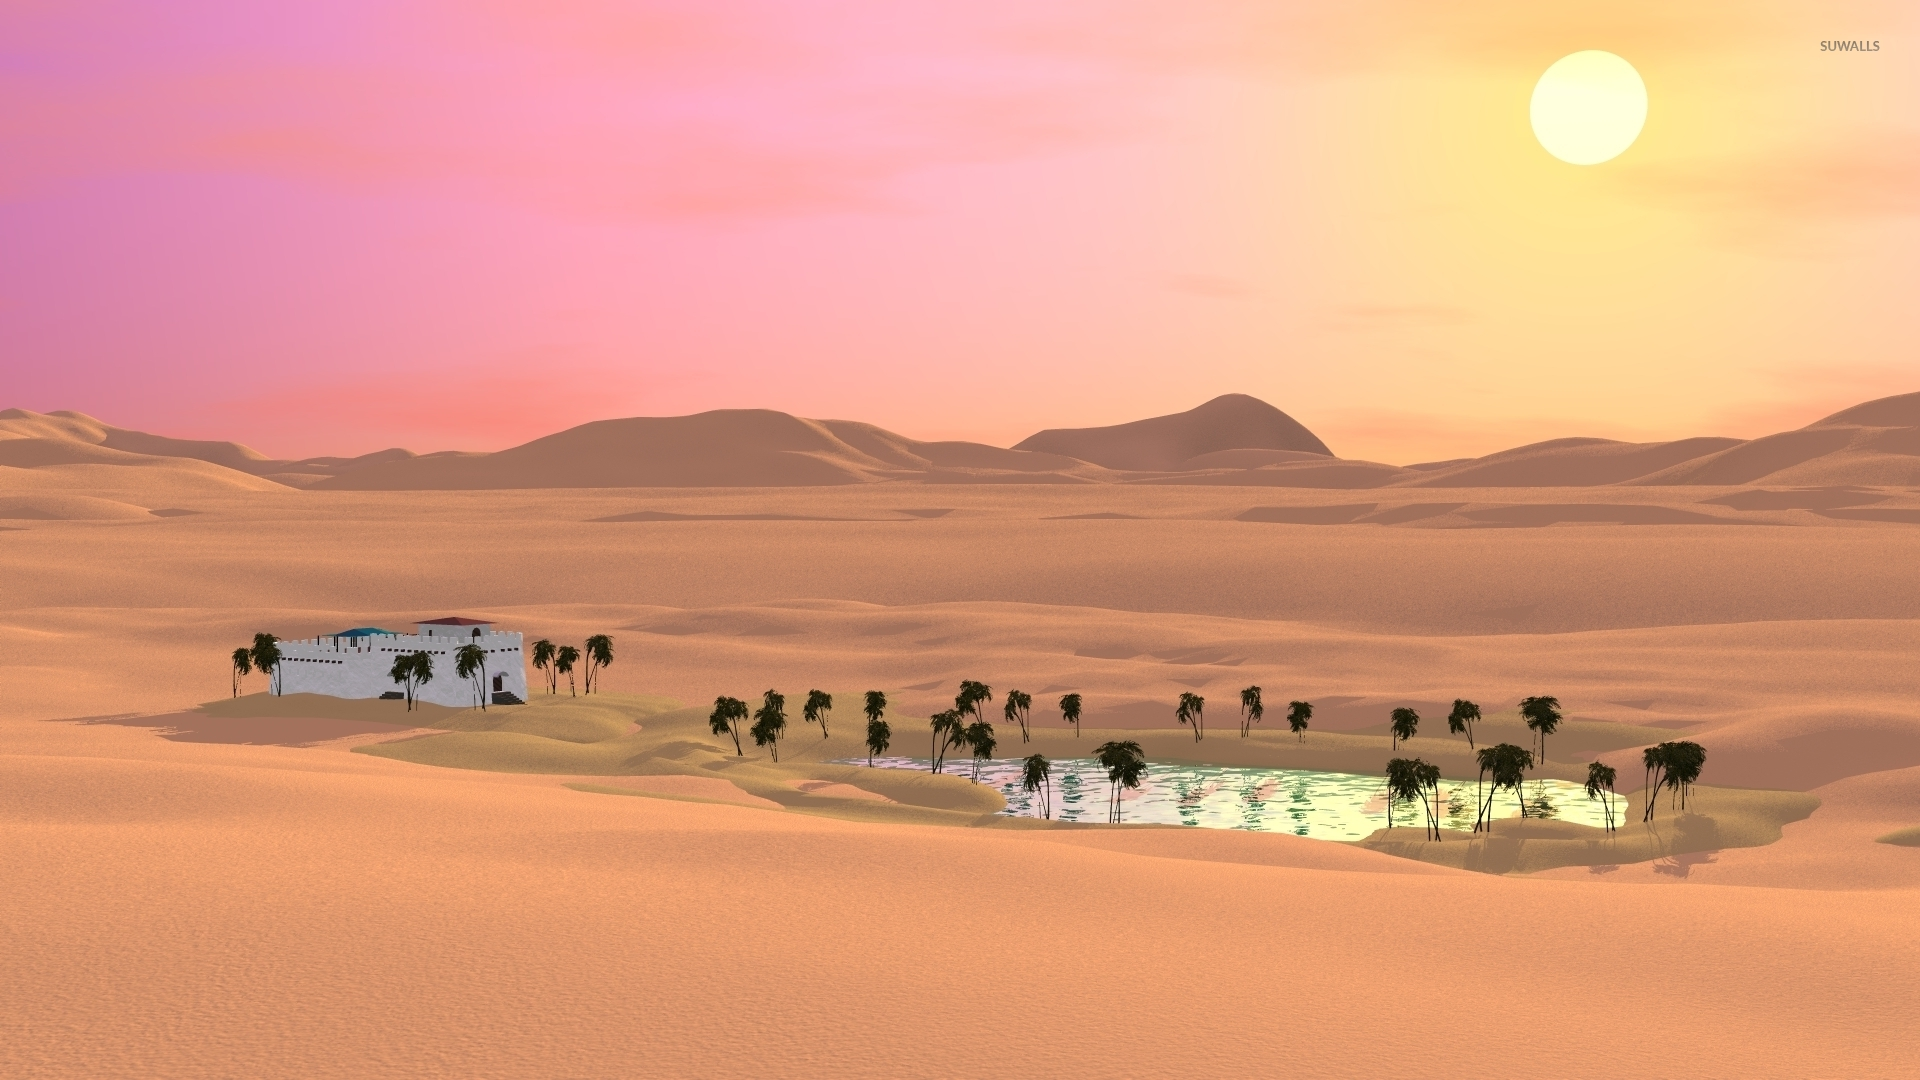 Oasis In The Desert Wallpaper Digital Art Wallpapers 51413